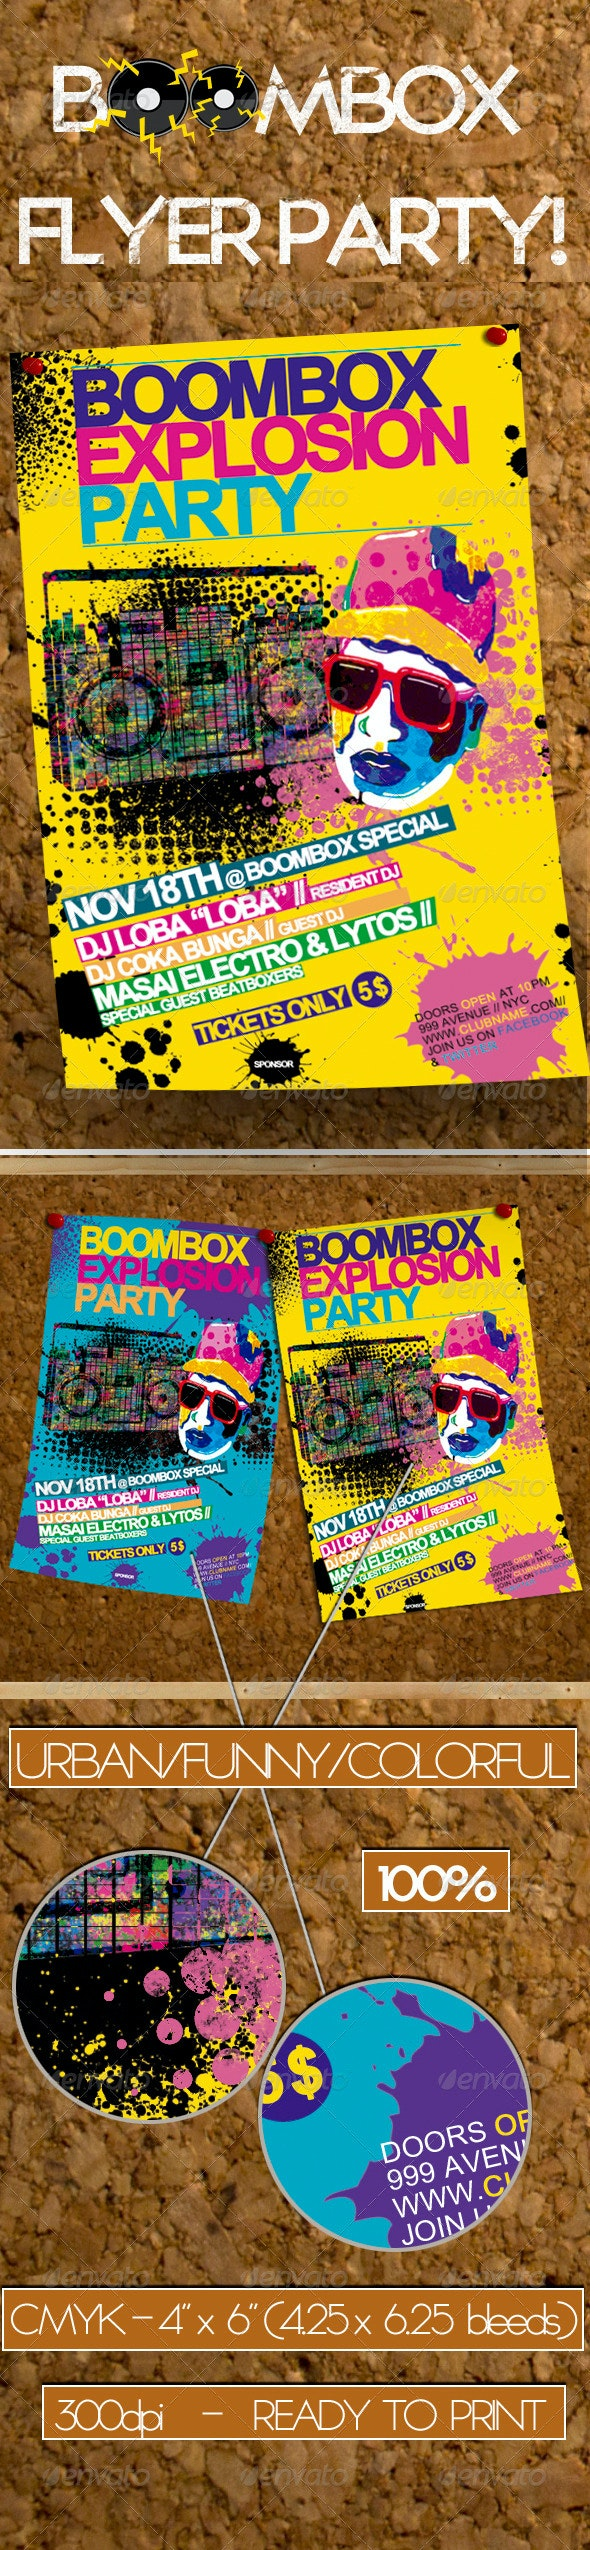 Boombox Party Flyer Template - Clubs & Parties Events